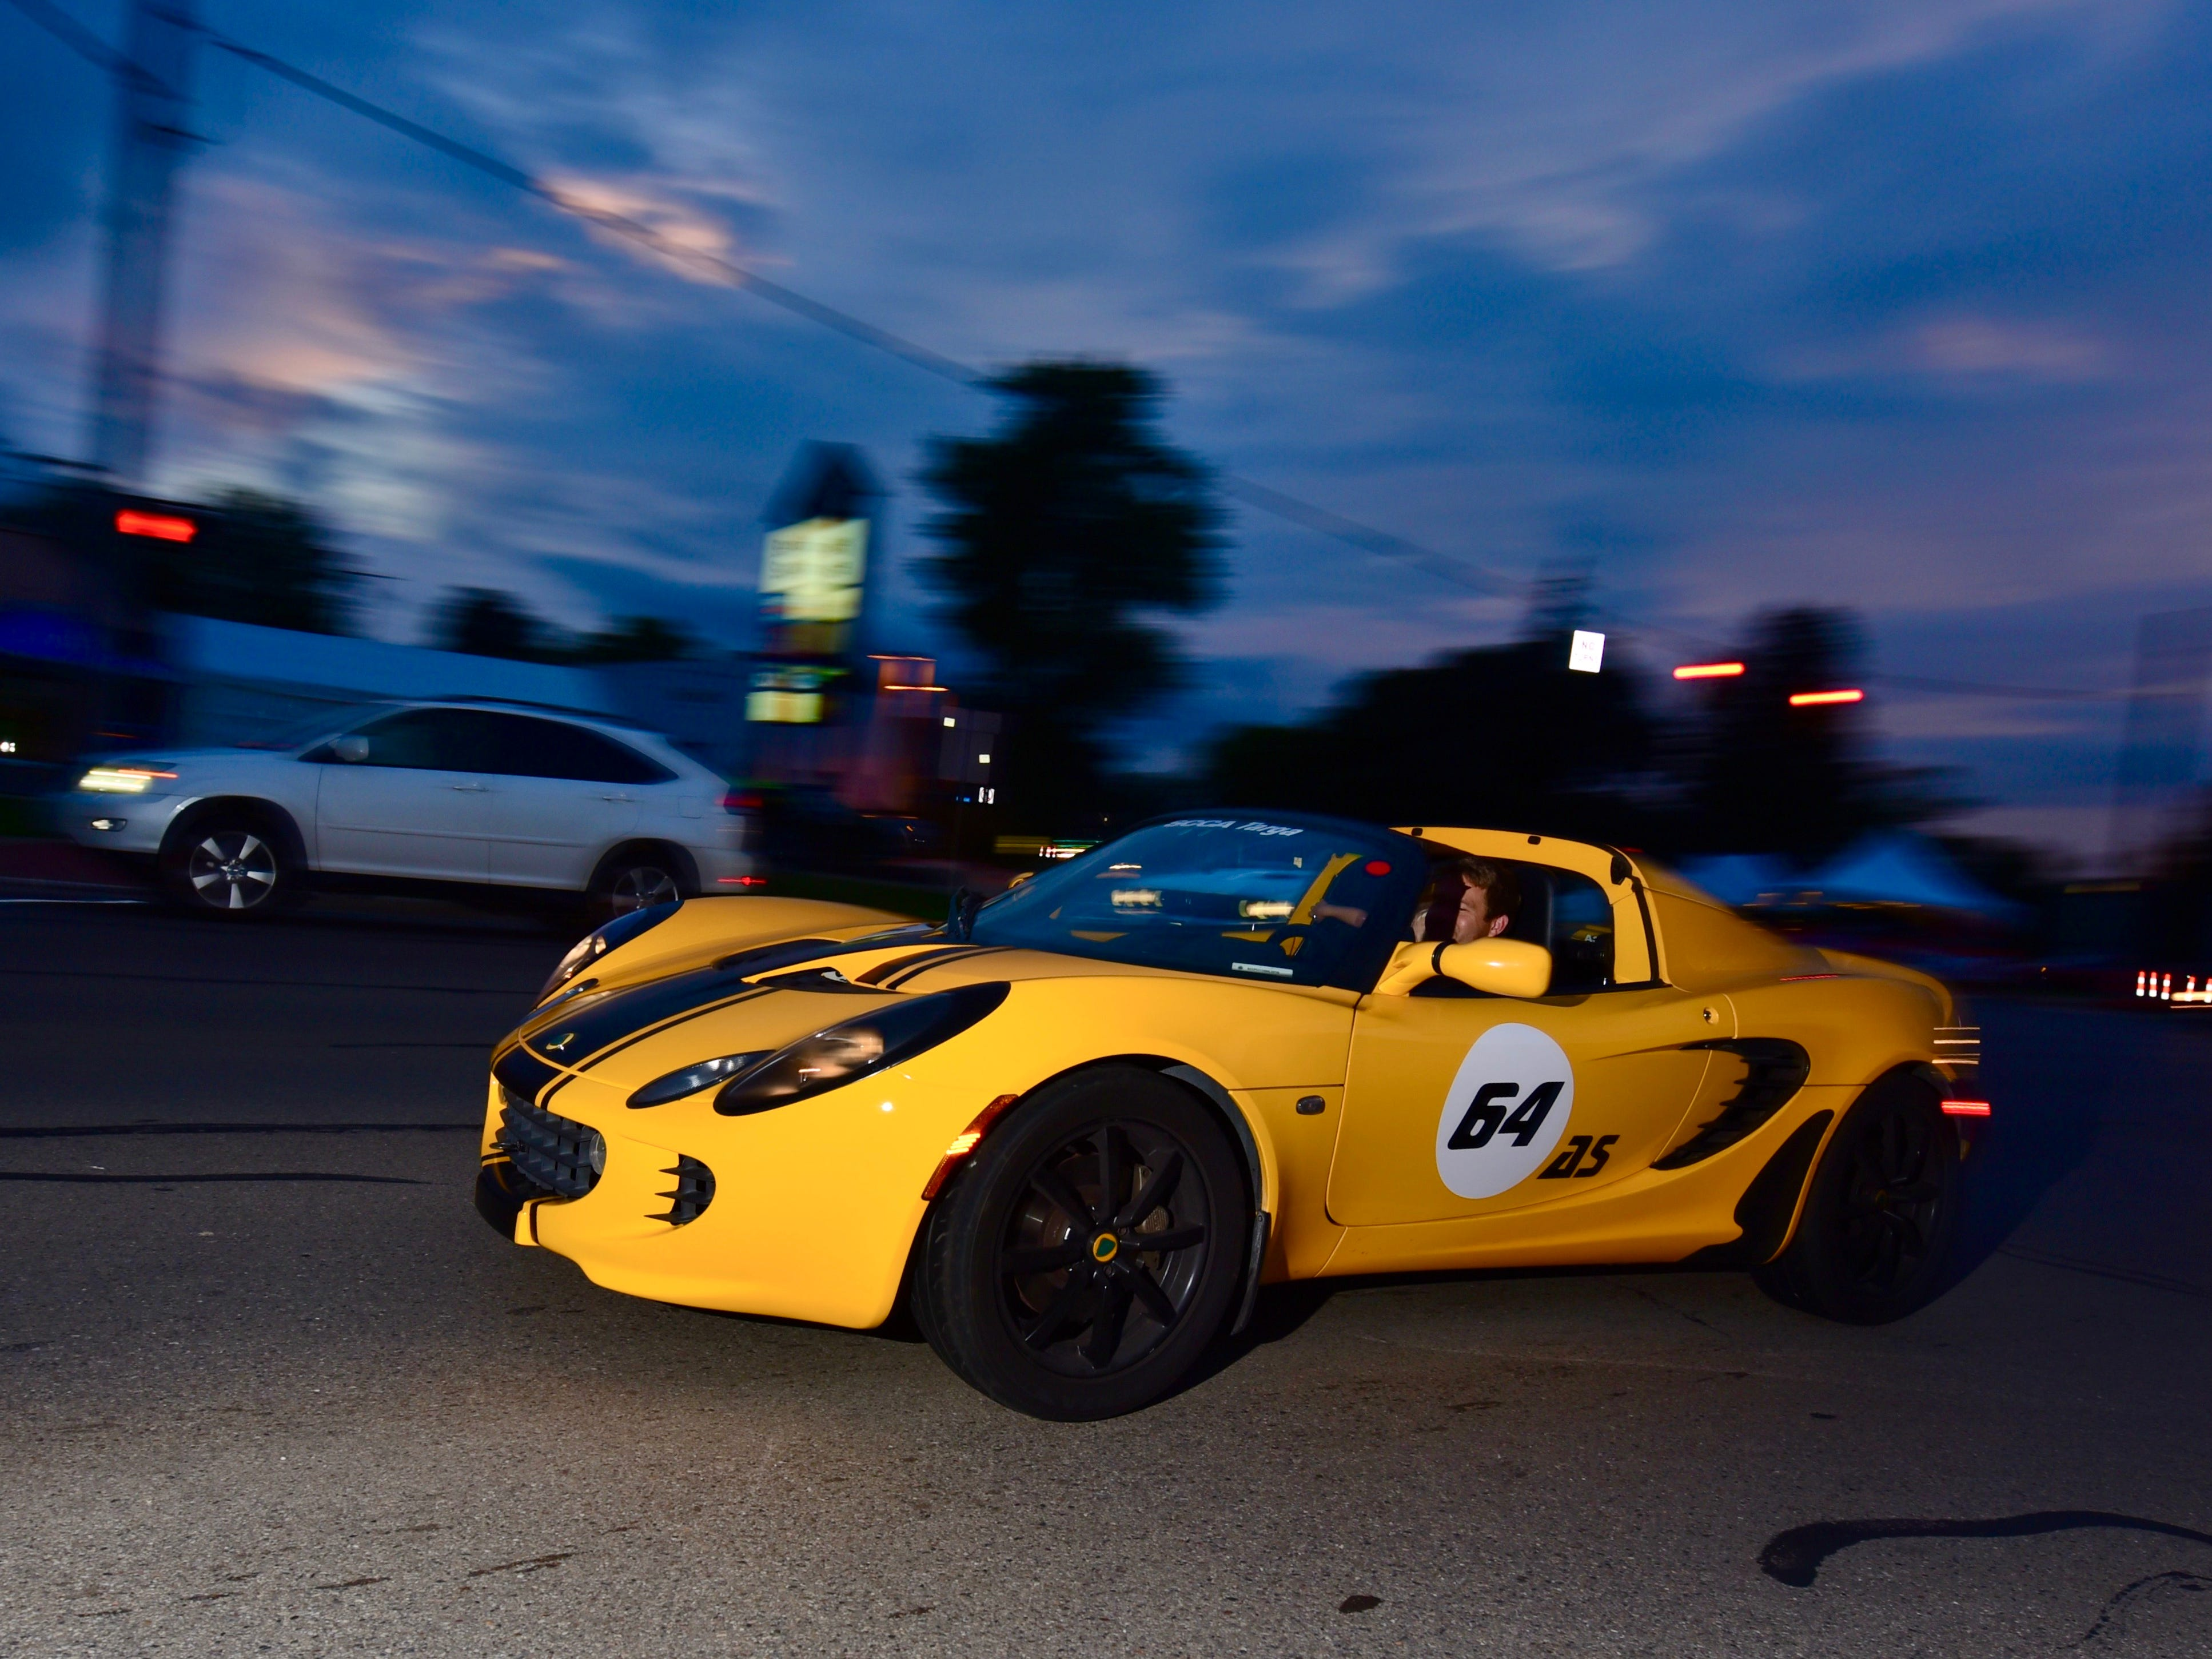 A flash of yellow zips by as cruisers take to Woodward Thursday night, preceding the big day Saturday and the 2018 Woodward Dream Cruise.